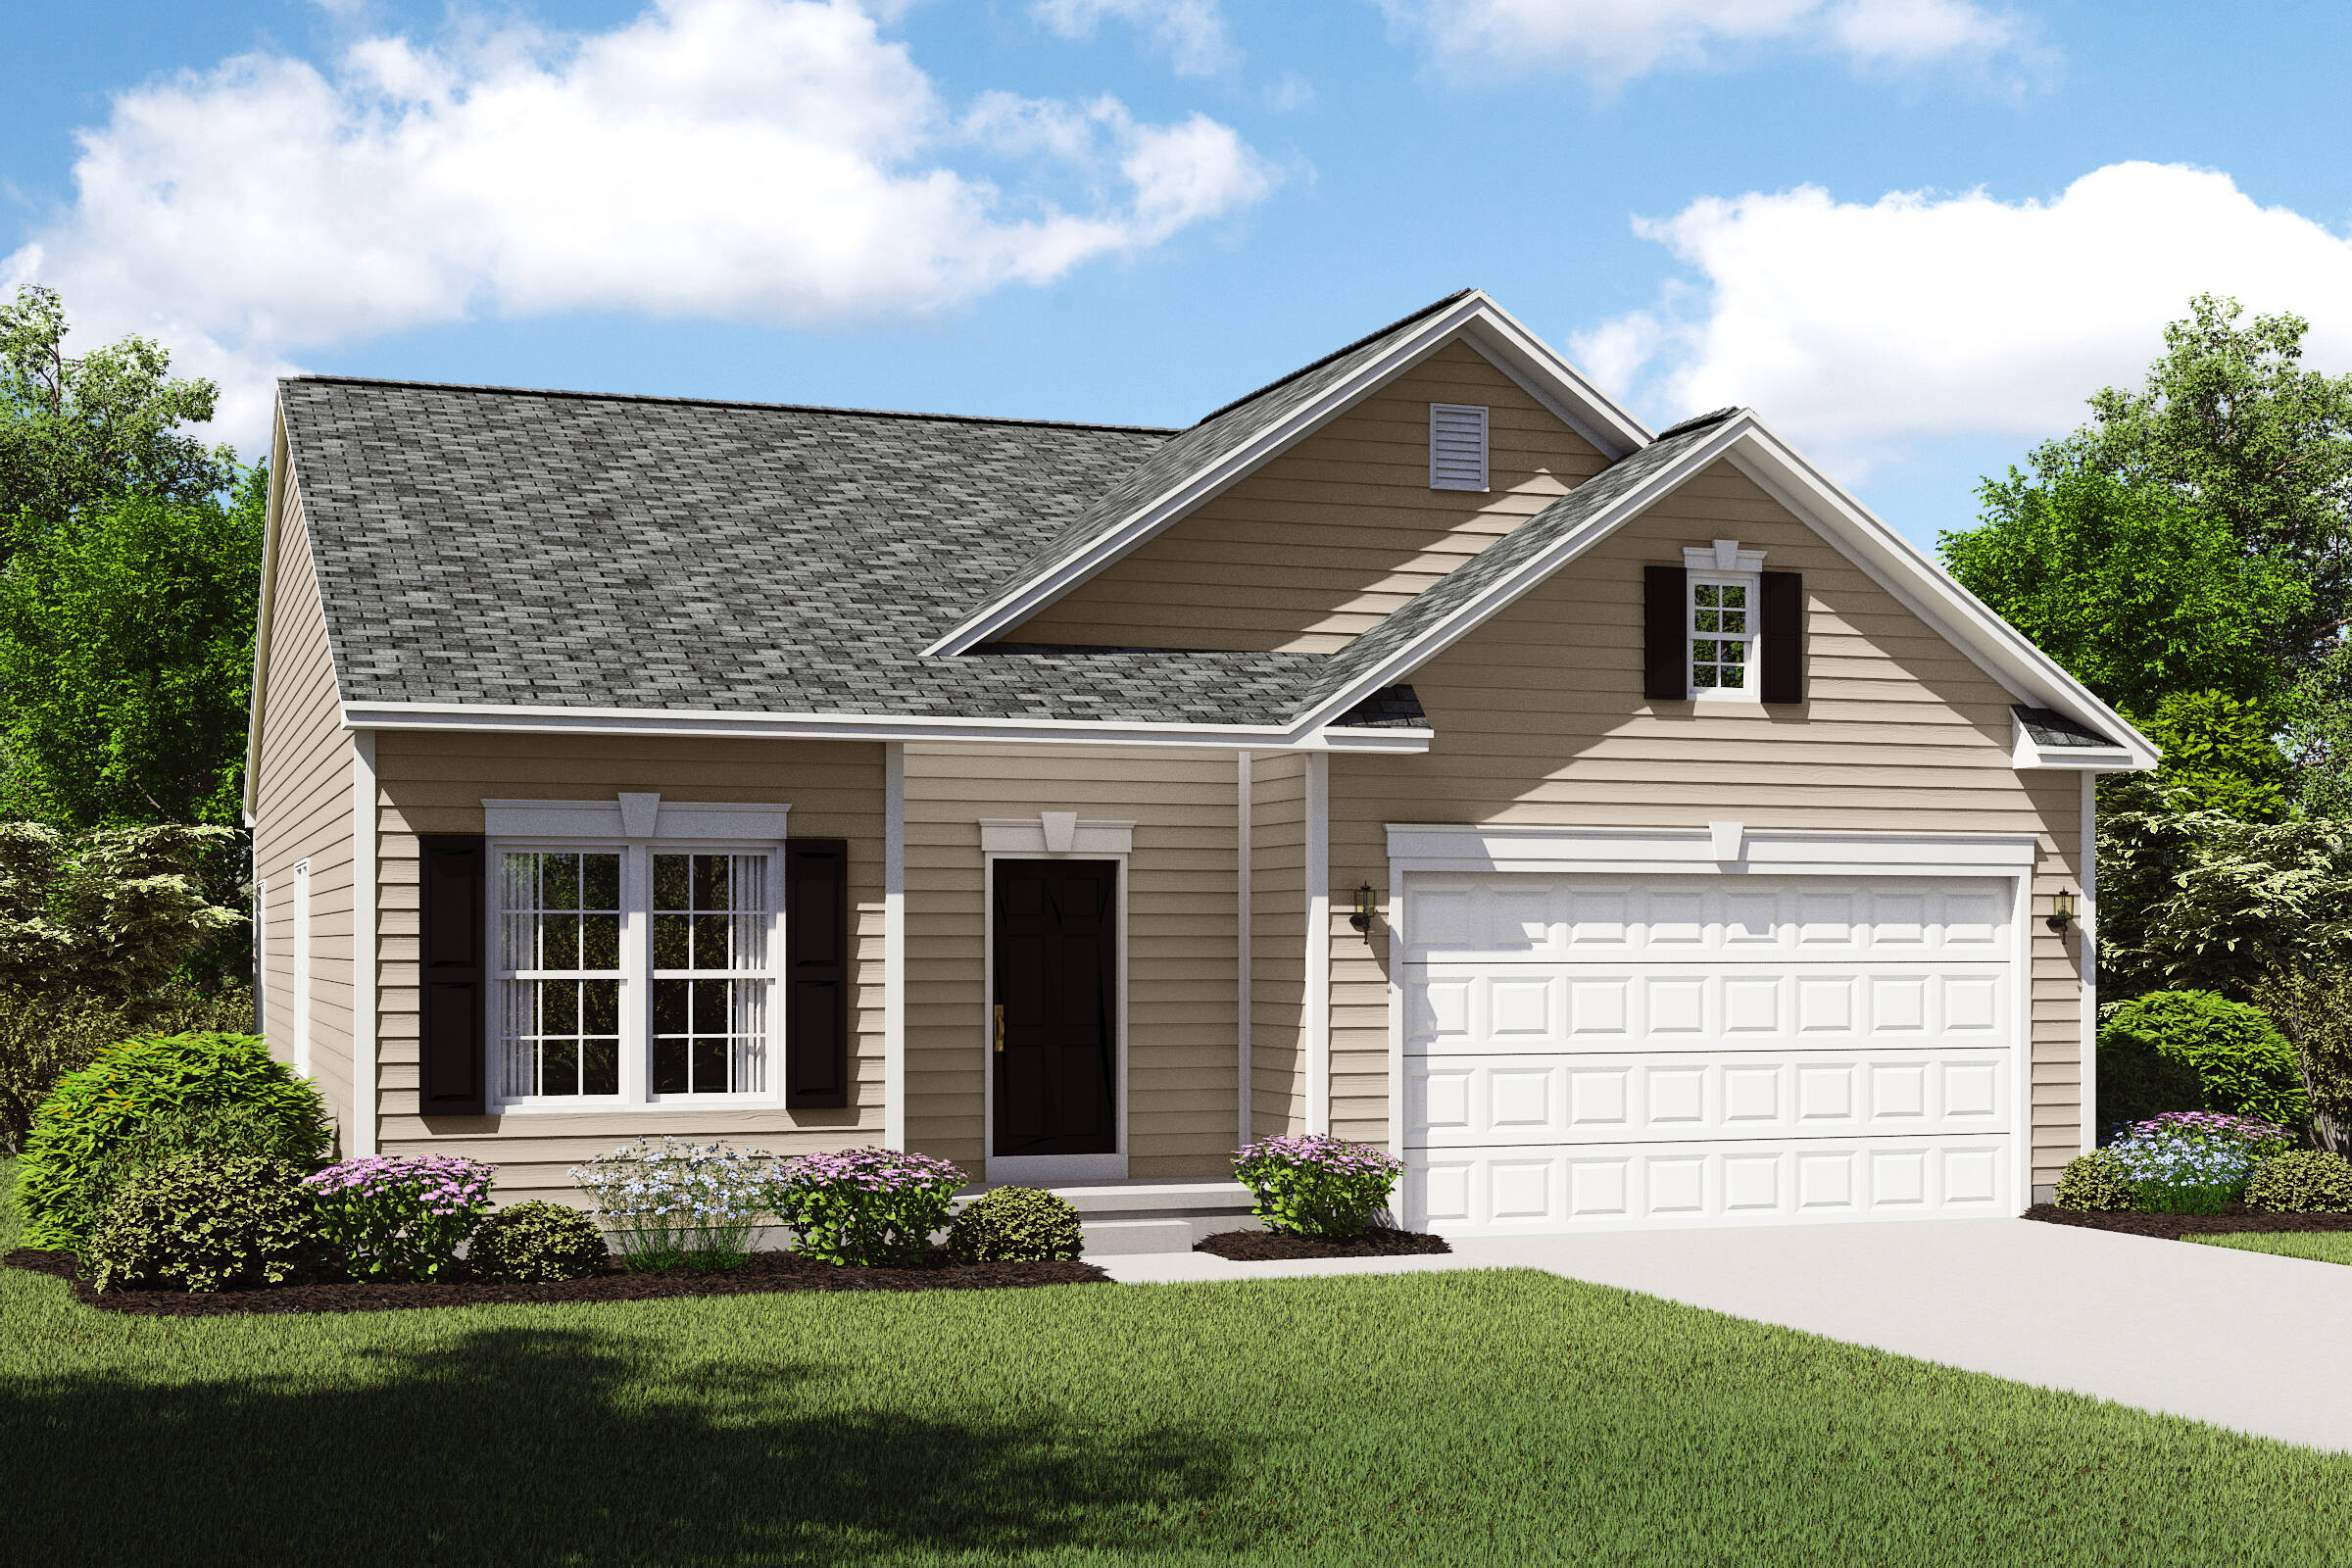 bedford cs new ranch home design cleveland